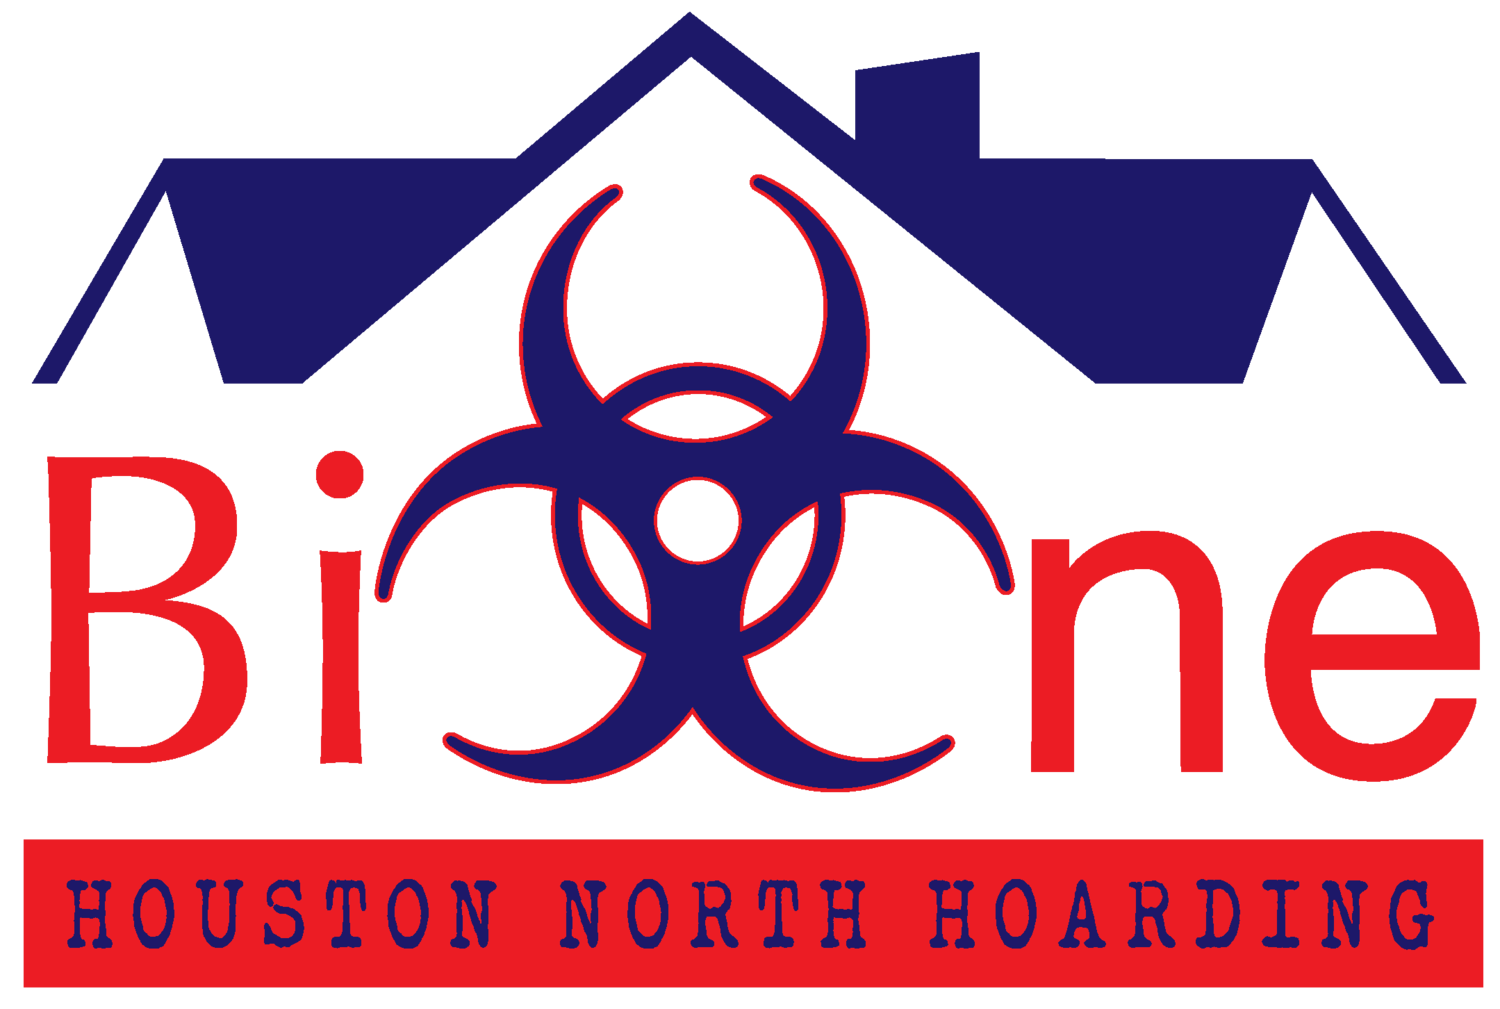 Houston North Hoarding